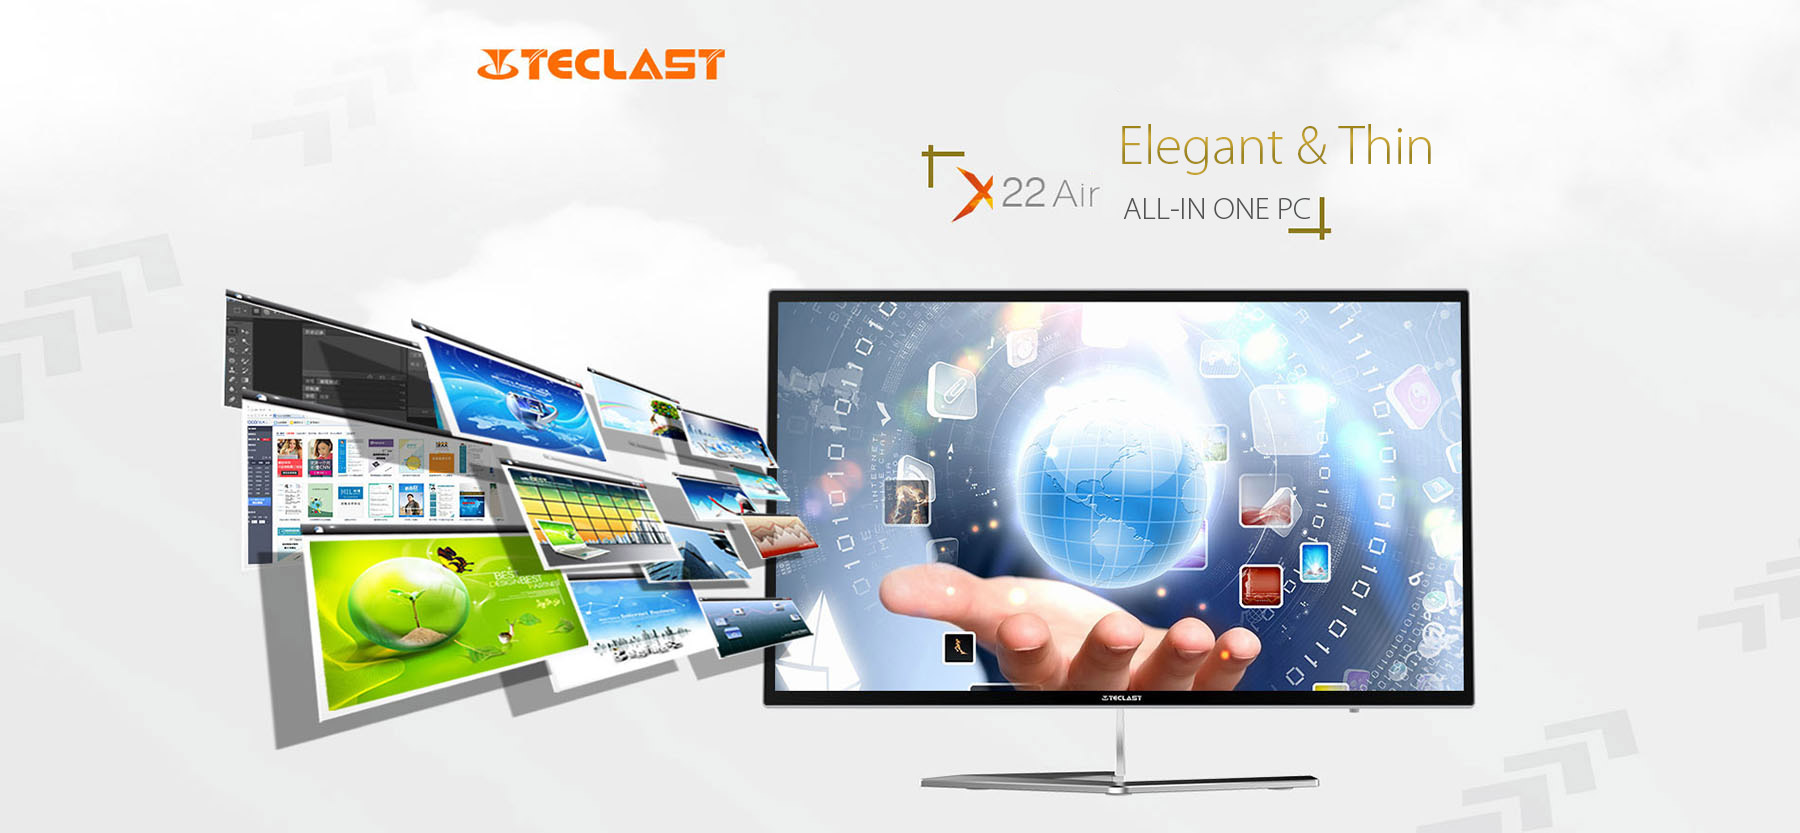 Teclast X22 Air 21.5 pollici All In One PC